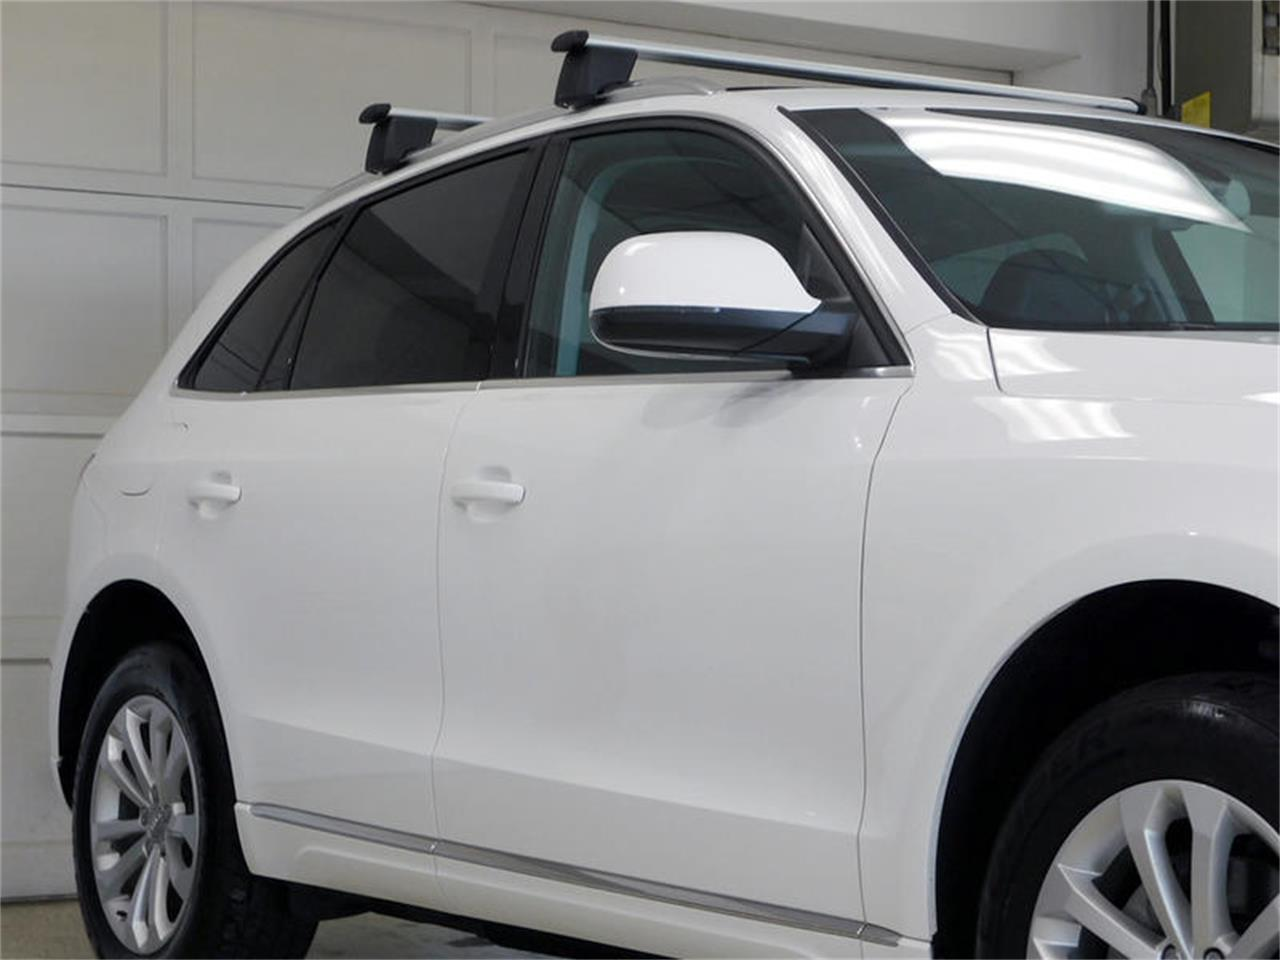 2014 Audi Q5 (CC-1273589) for sale in Hamburg, New York